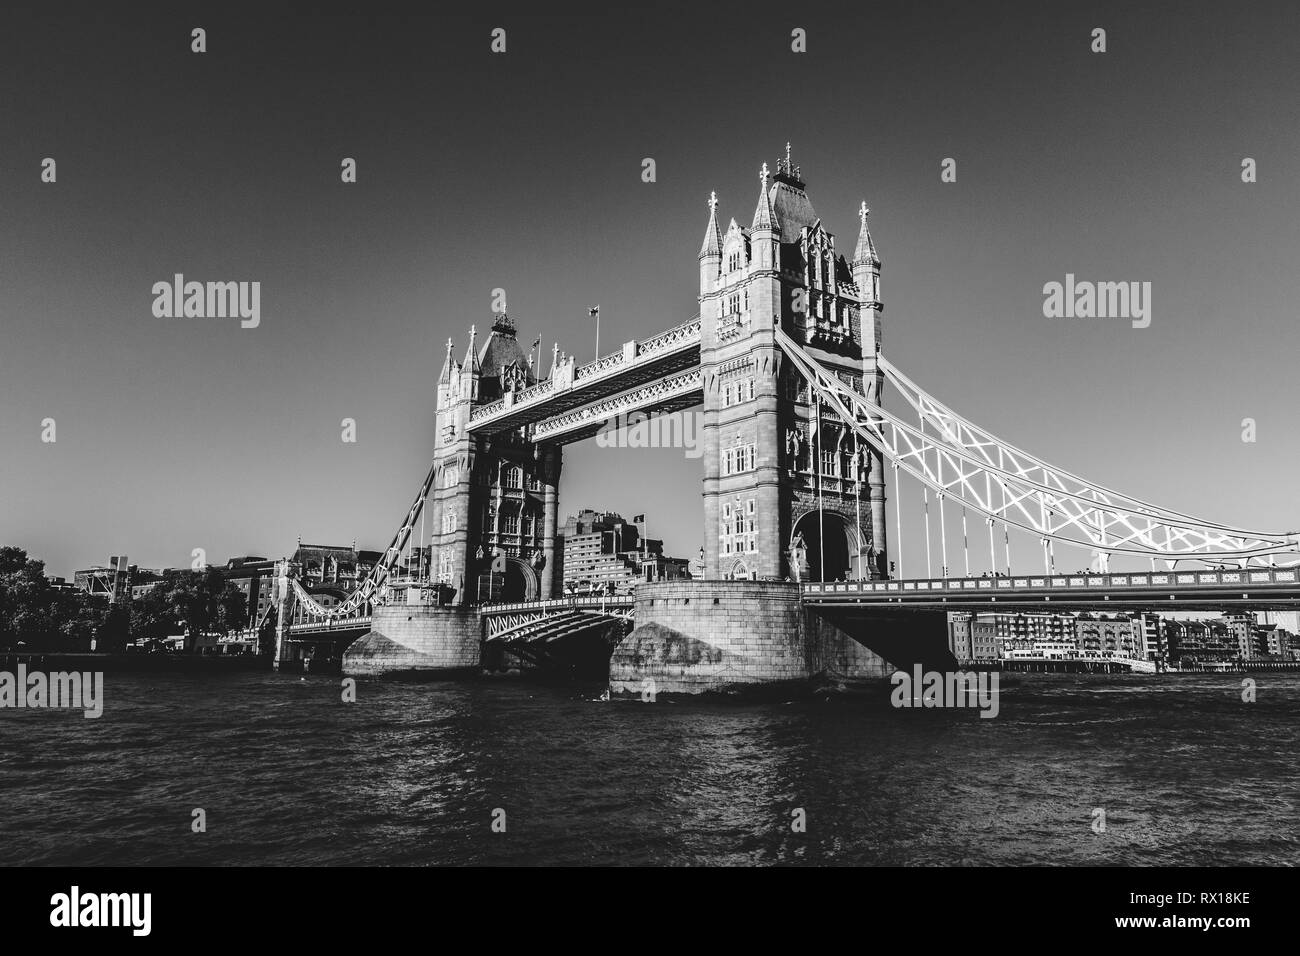 sky with no clouds during a sunny day, double decker bus on the bridge. - Stock Image